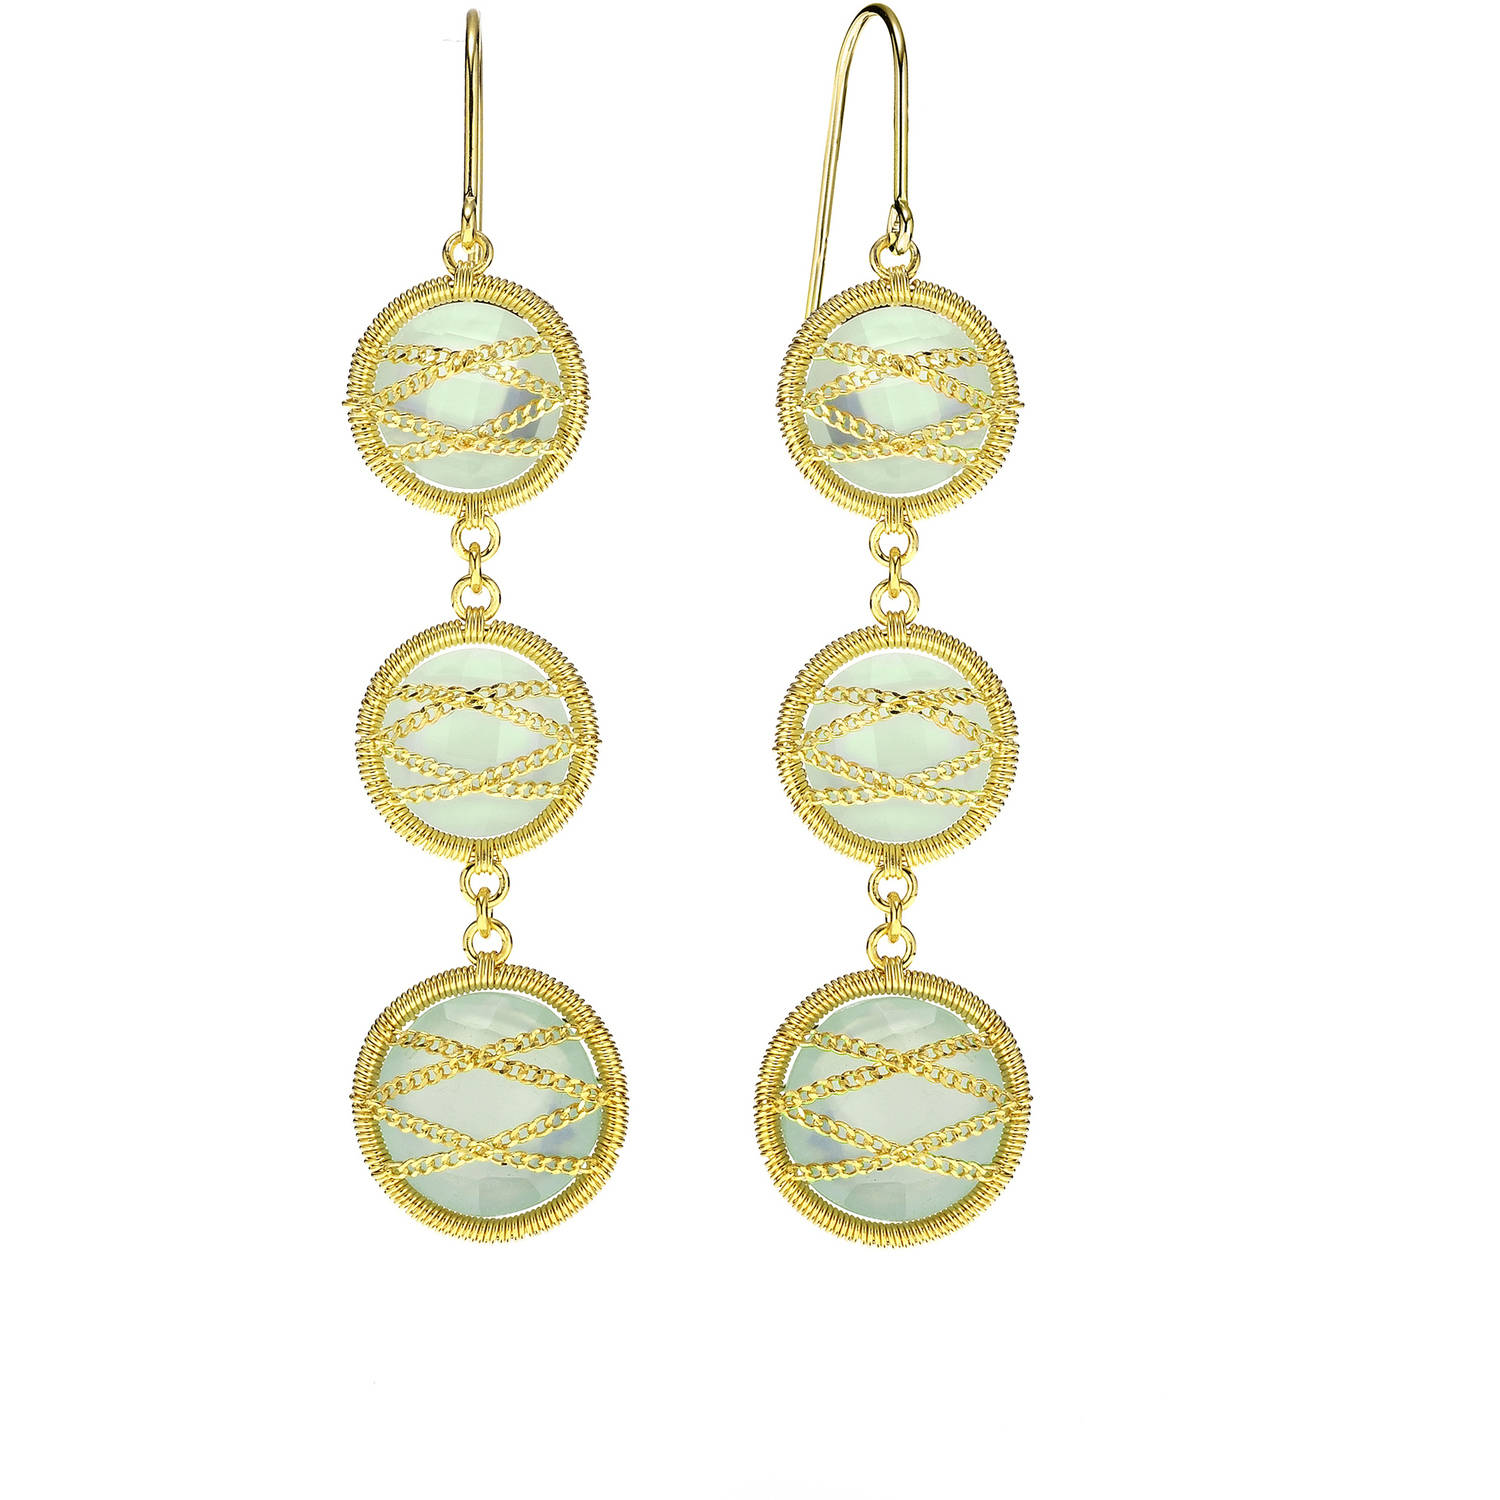 Image of 5th & Main 18kt Gold over Sterling Silver Hand-Wrapped Triple Round Chalcedony Stone Earrings